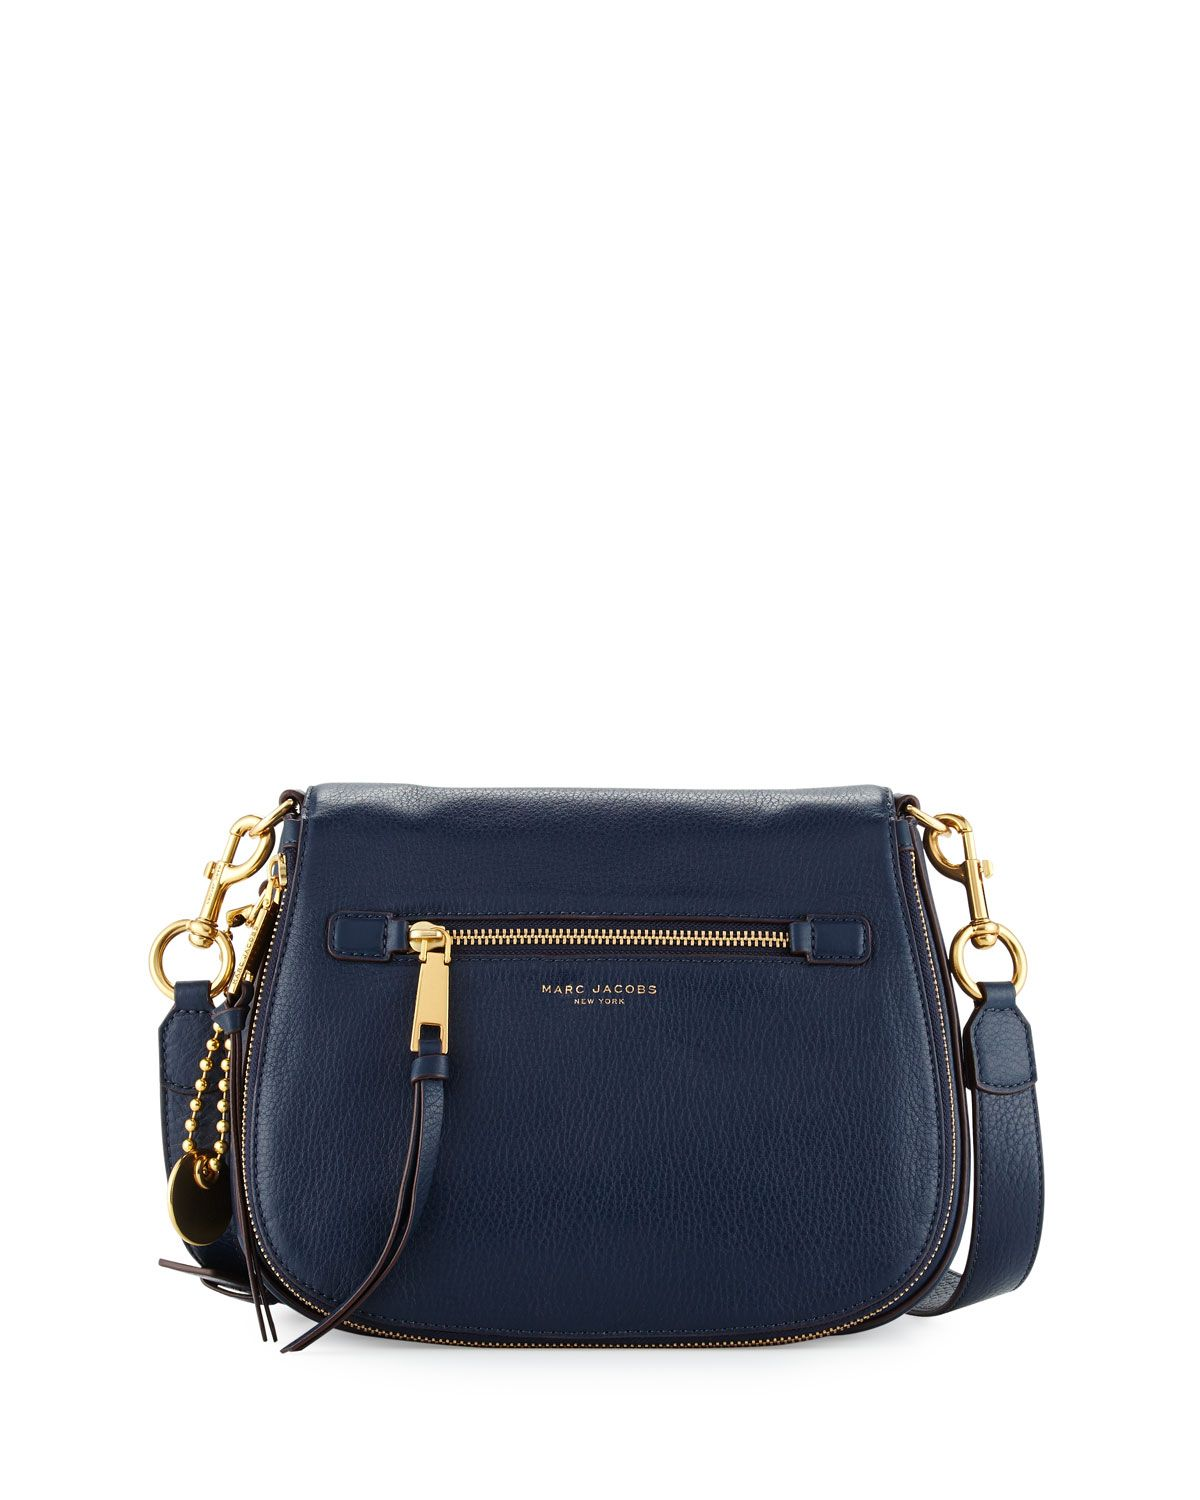 Recruit Leather Saddle Bag, Navy - Marc Jacobs    Handbags, Wallets ... a725133d0f